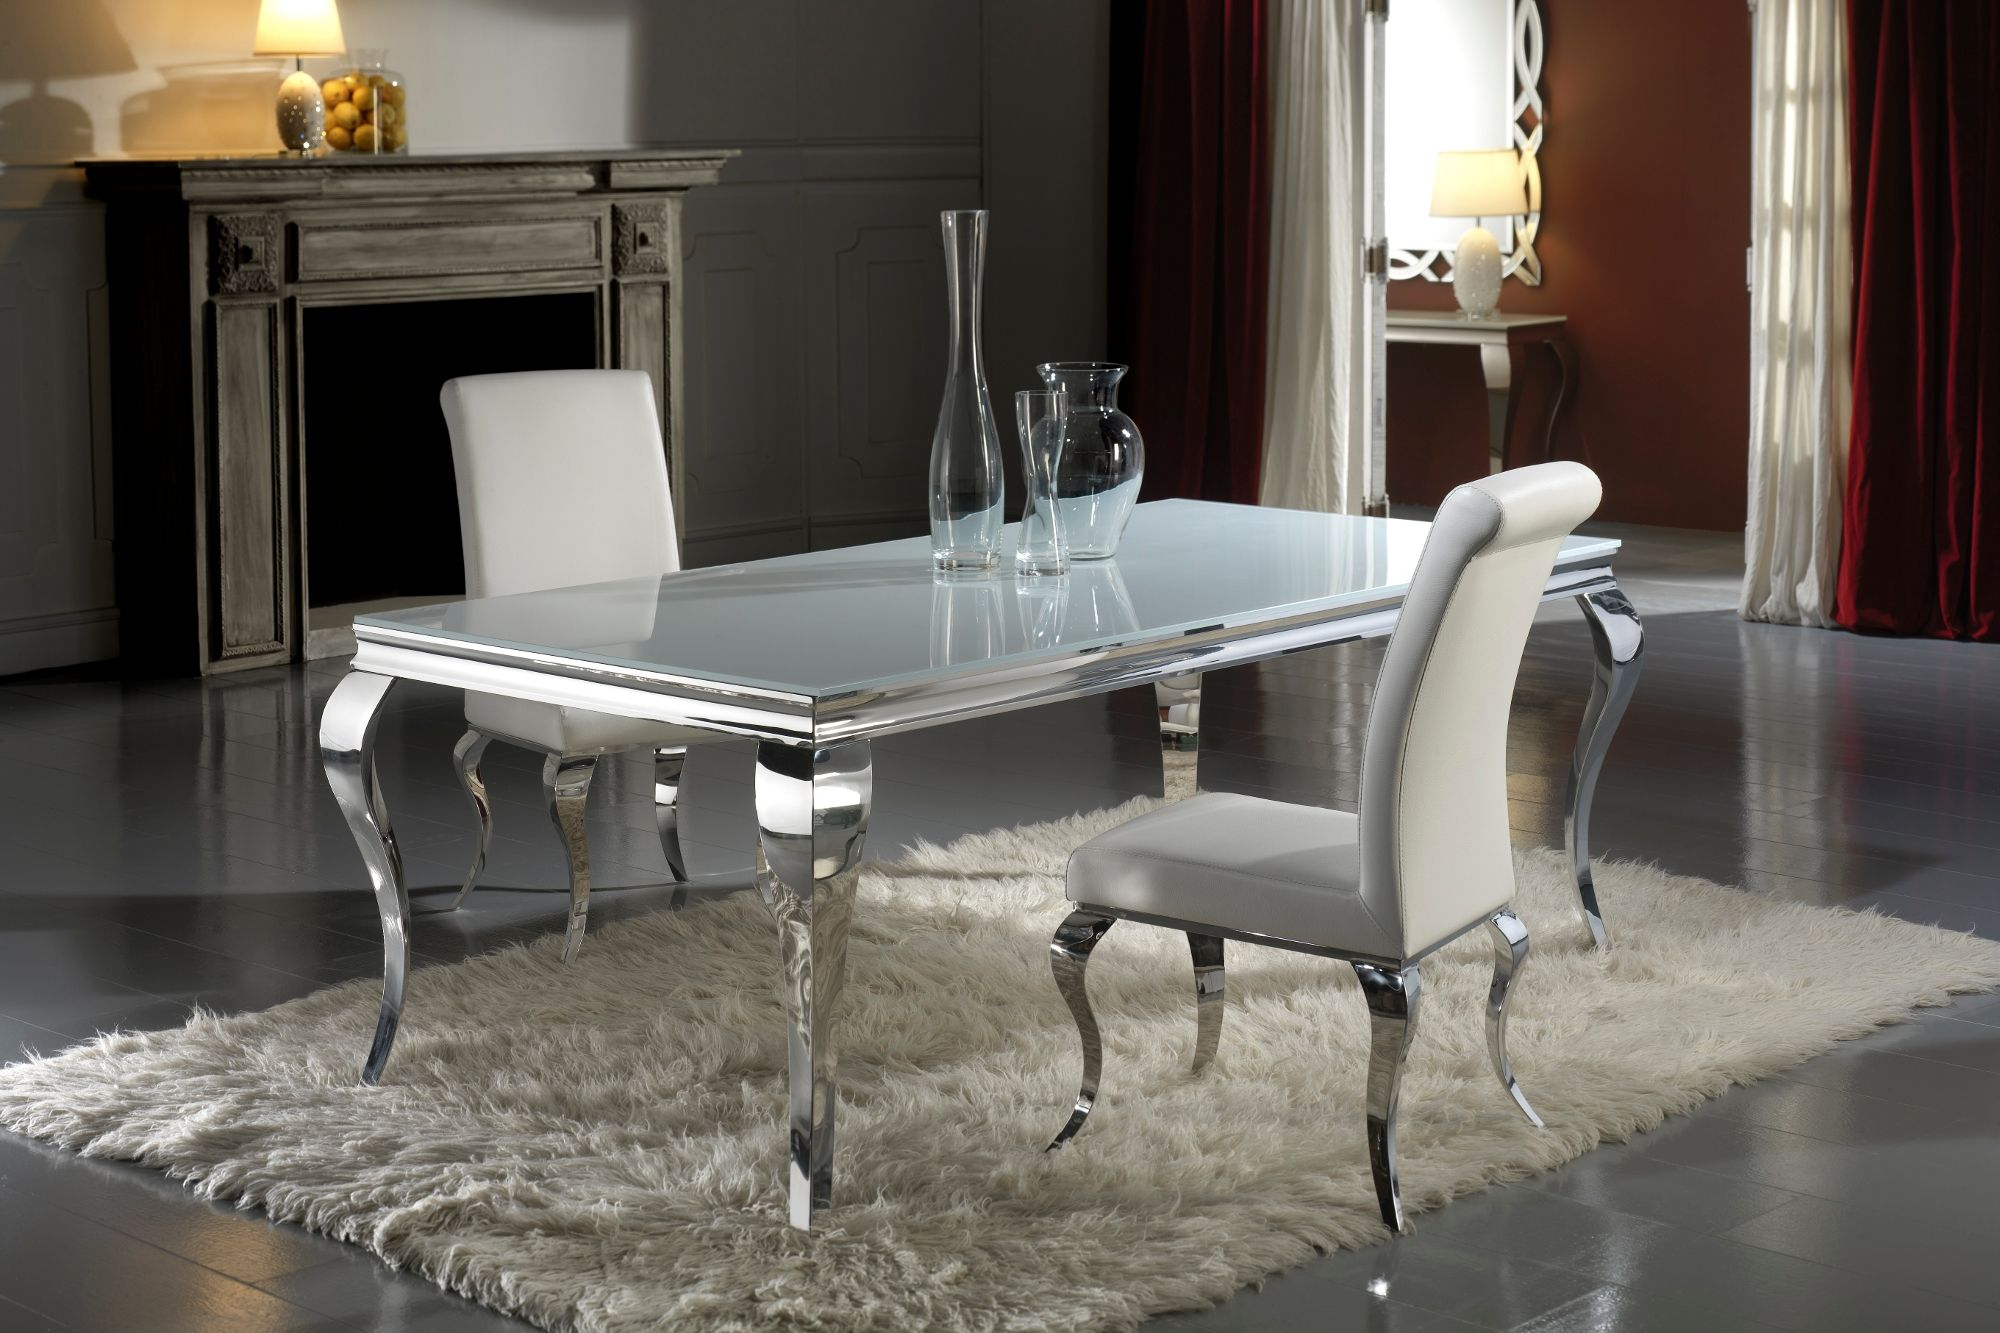 glass kitchen tables best undermount sinks modern louis white dining table this rectangular